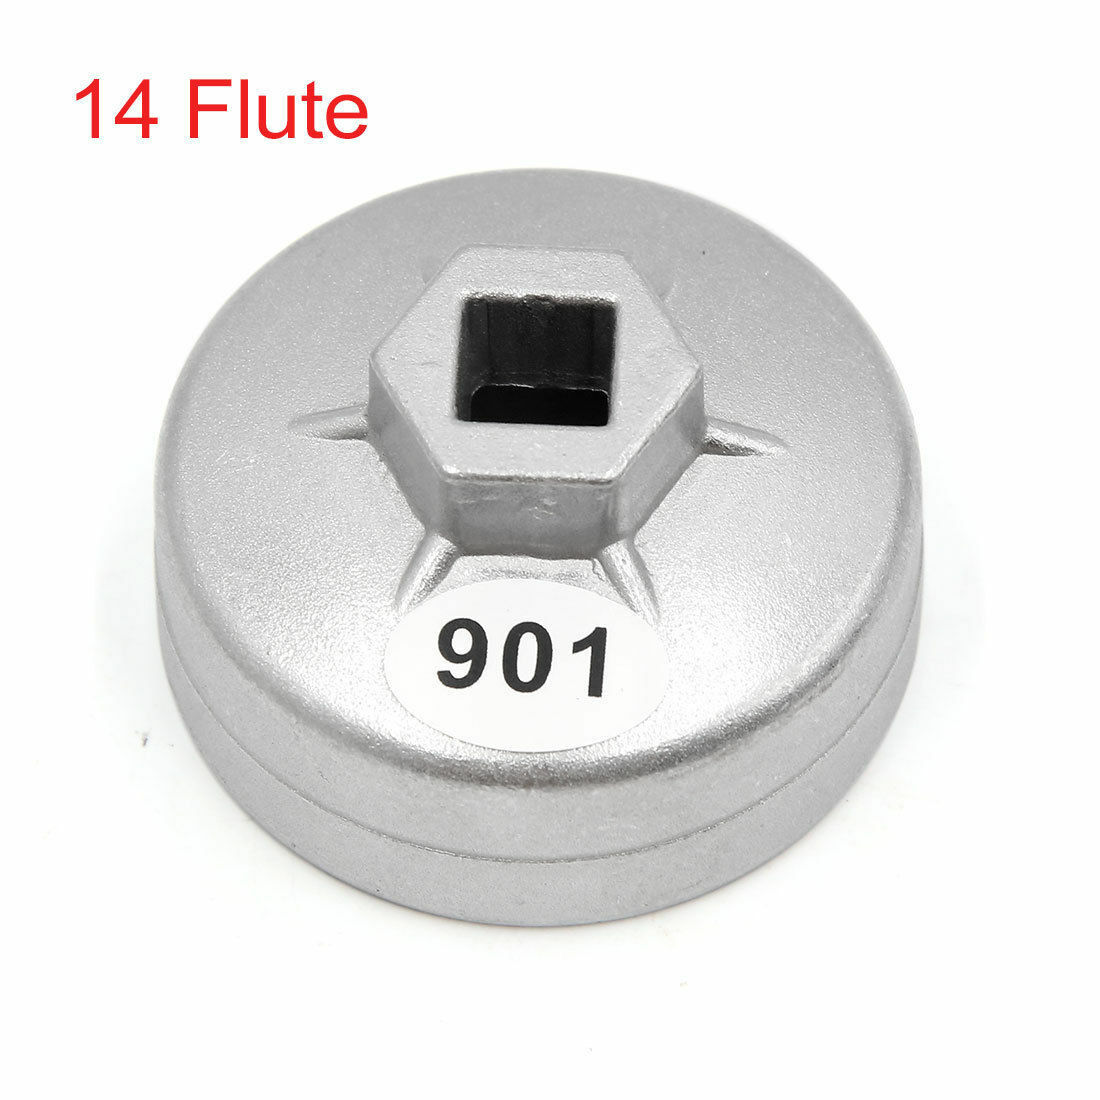 Wrench Auto Tool 1/2 Square Drive 65mm 14 Flutes End Cap Oil Filter Wrench Auto Tool For Toyota Fengshen Nissan